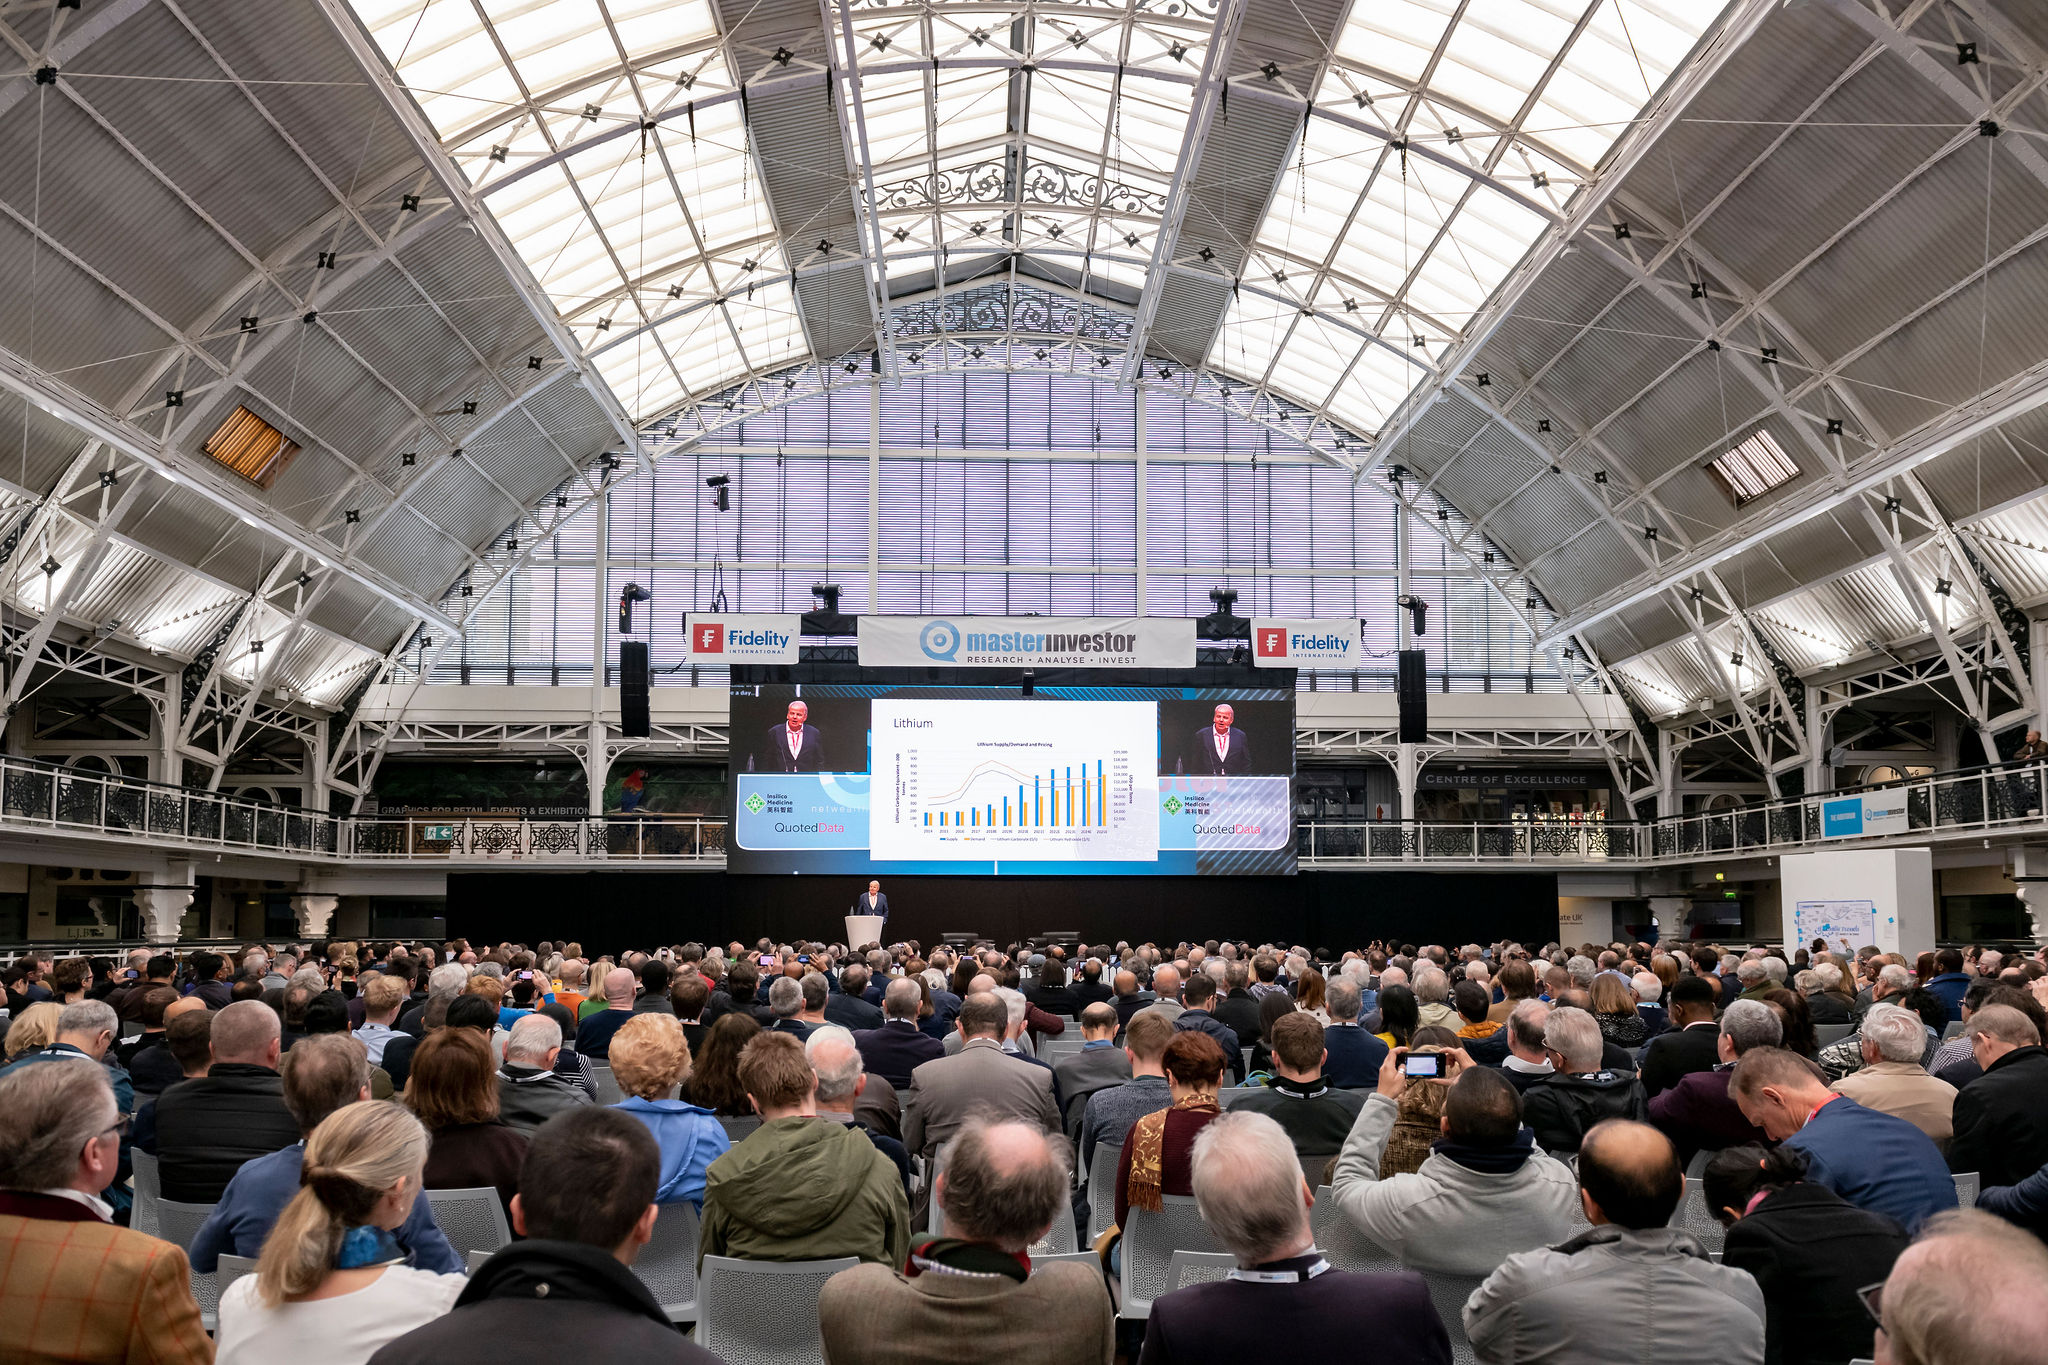 annual Conference and Exhibition Islington , live event